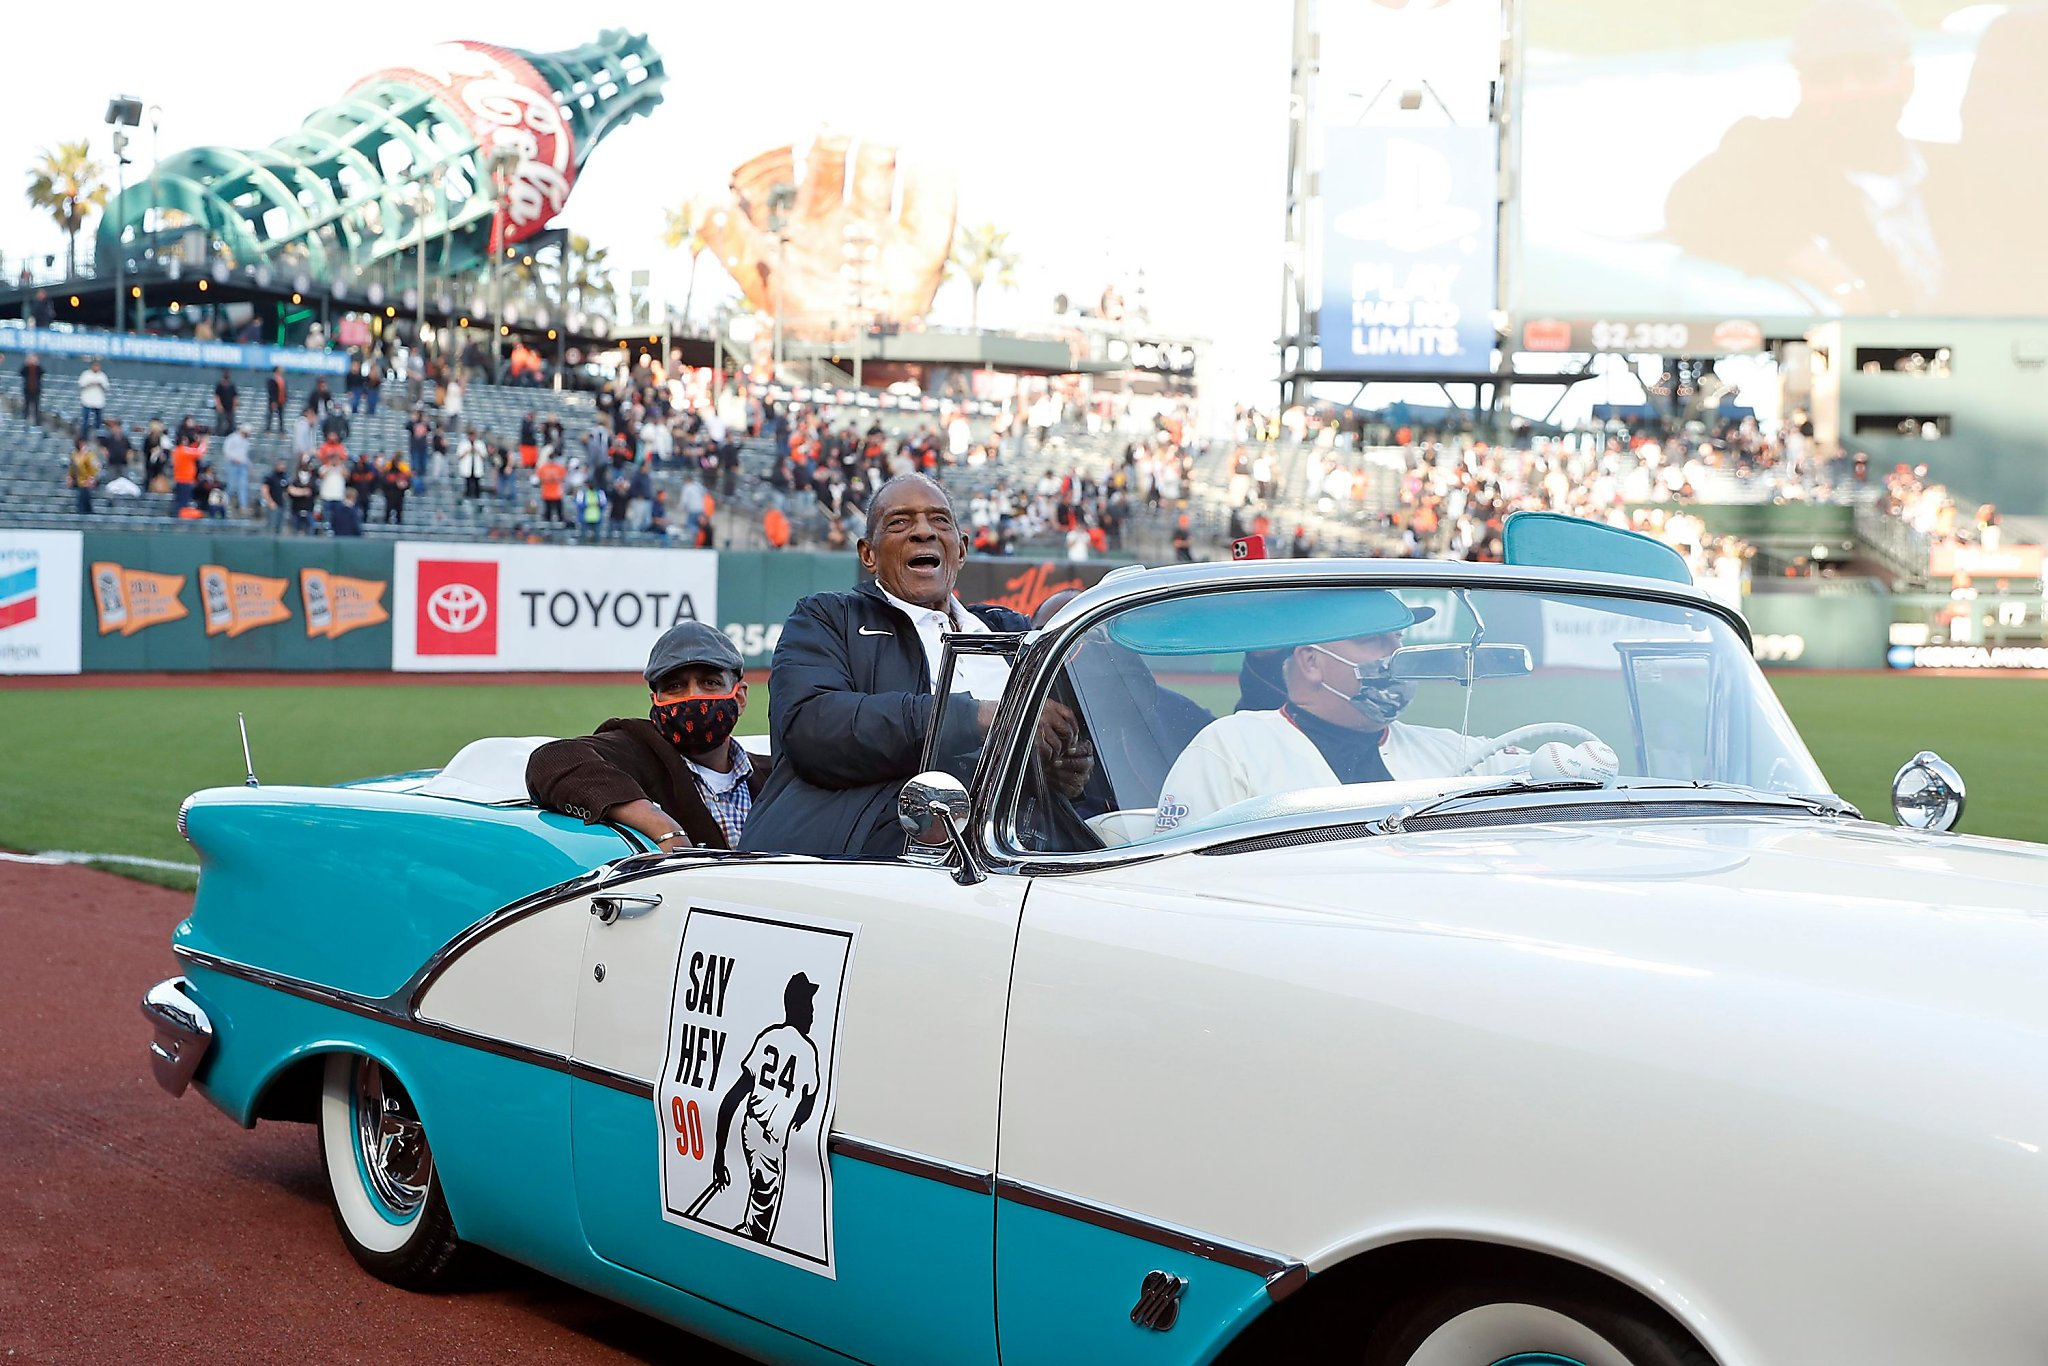 Even at 90, Willie Mays owned the diamond in front of Giants fans